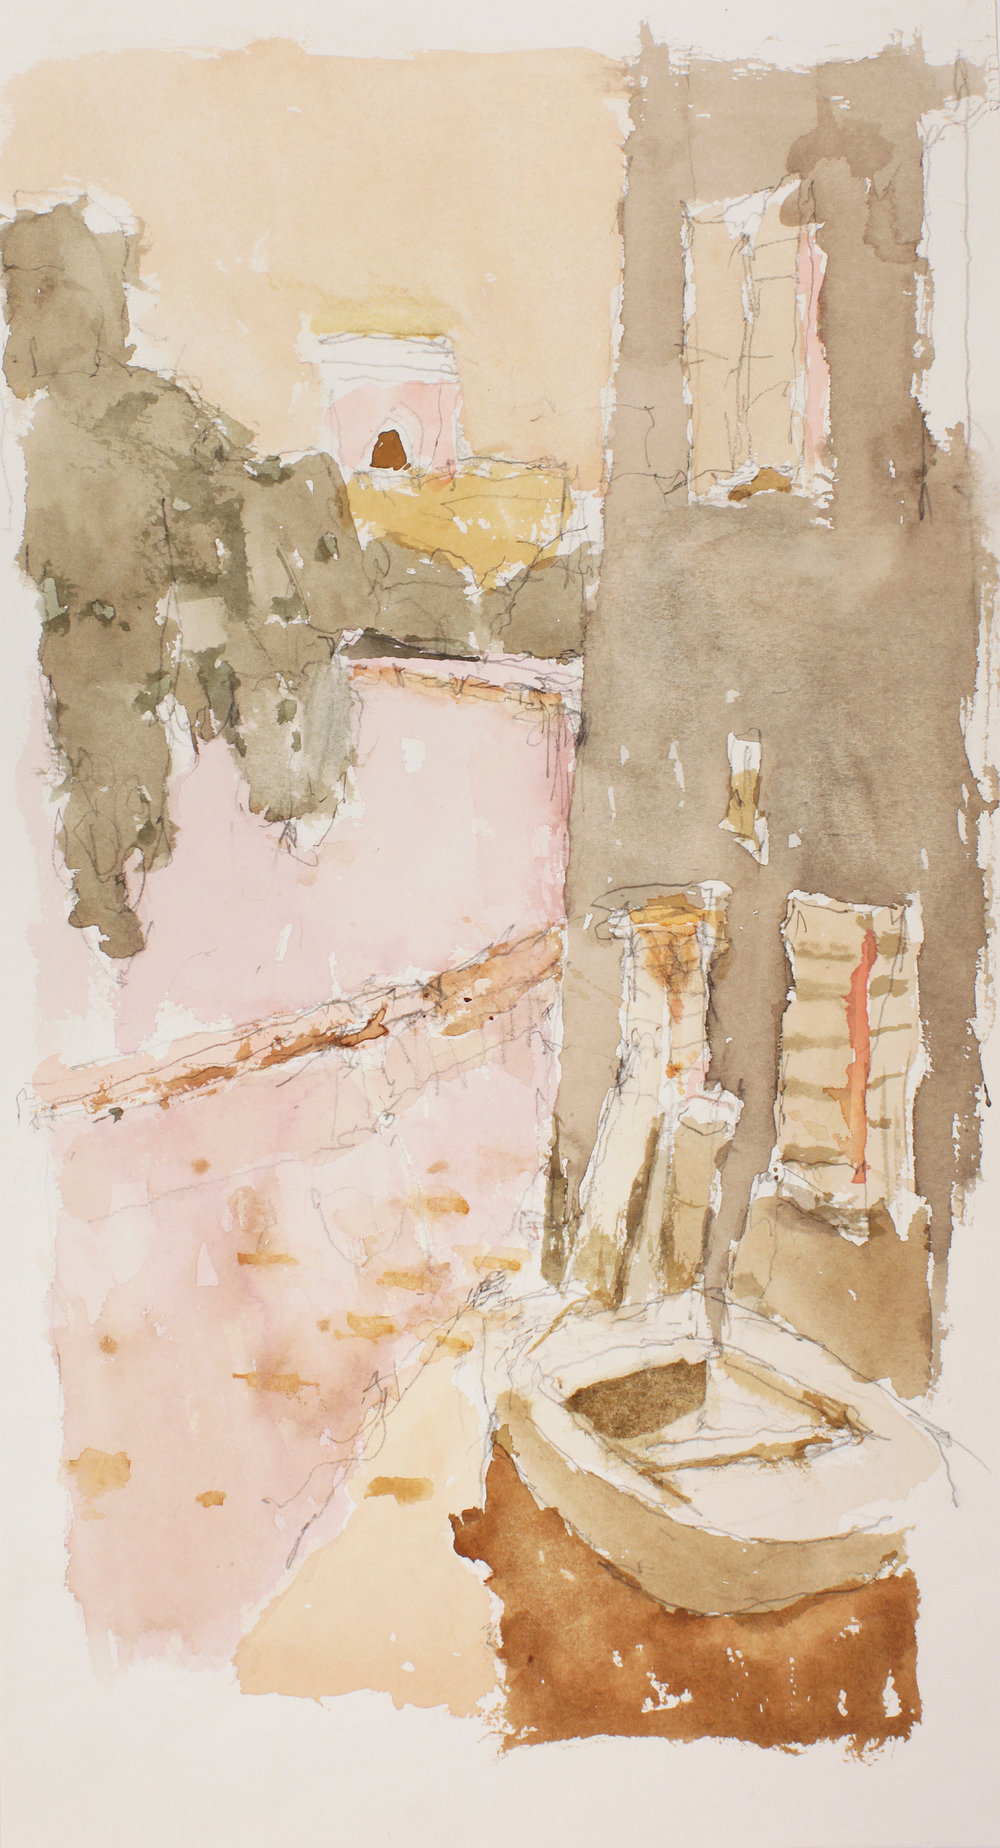 Canal with Pink Wall Study